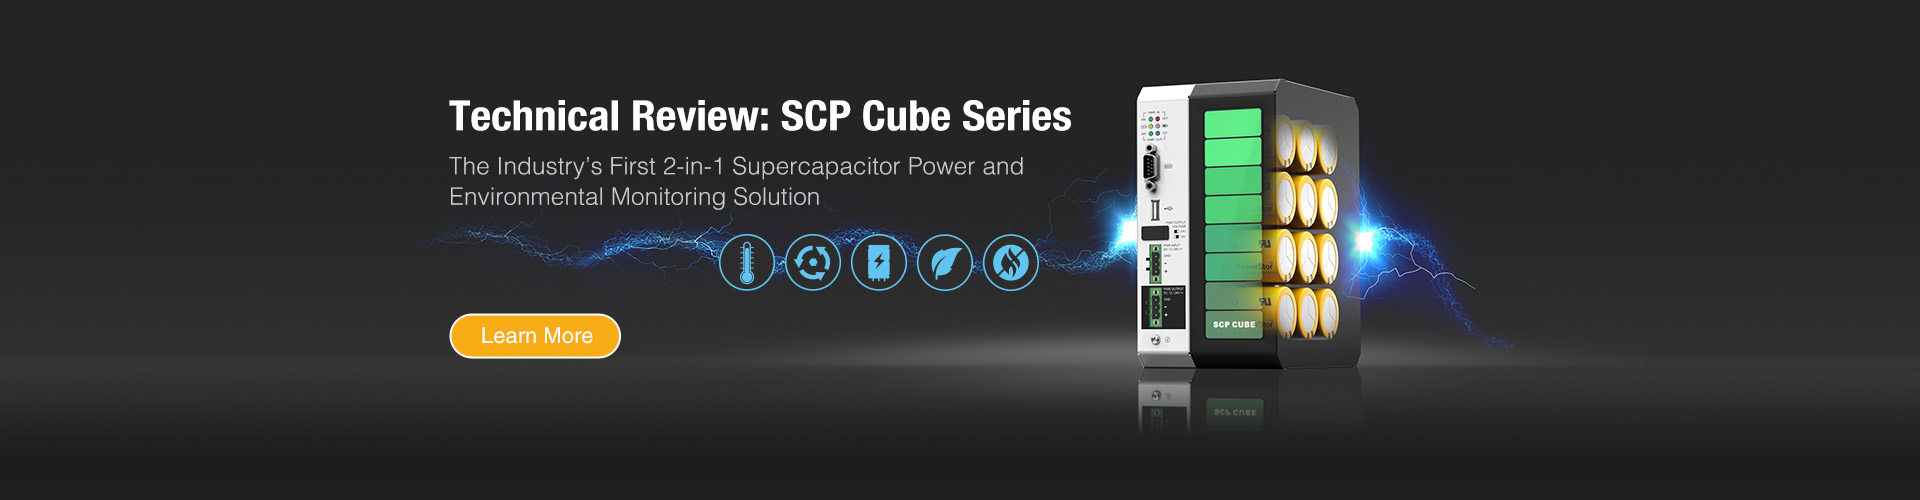 Technical Review: SCP Cube Series